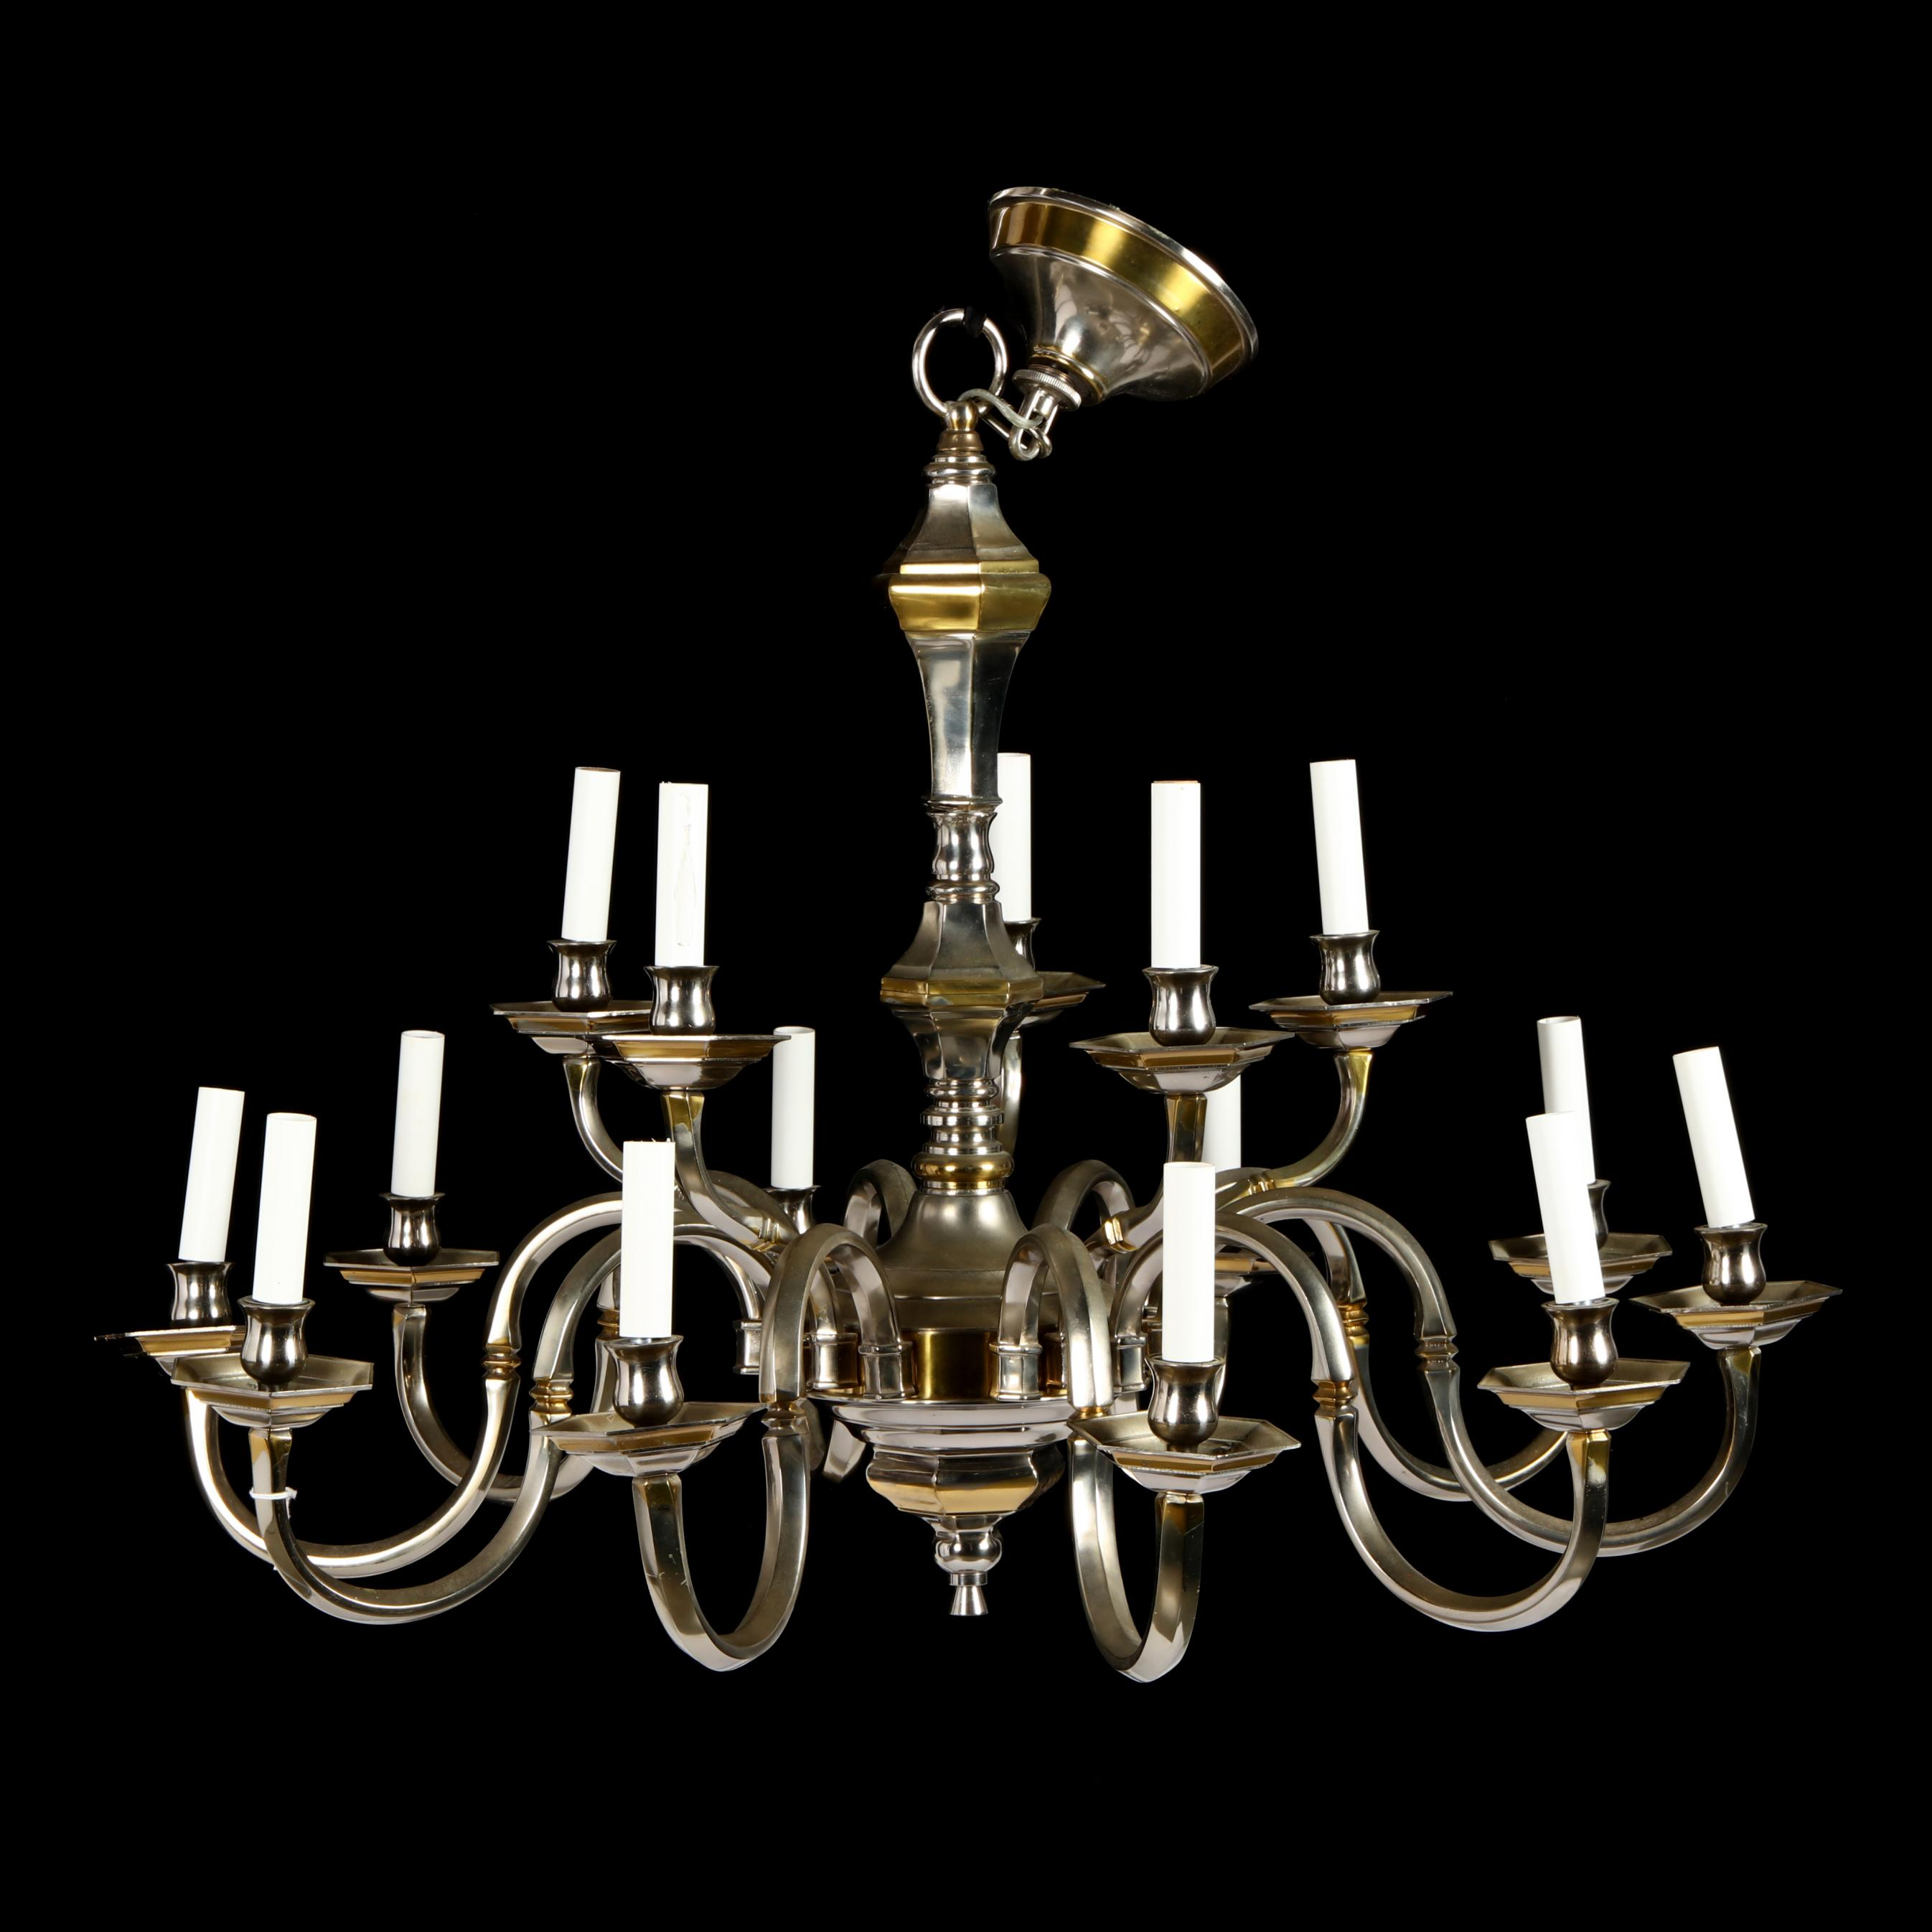 colonial-style-silverplate-chandelier